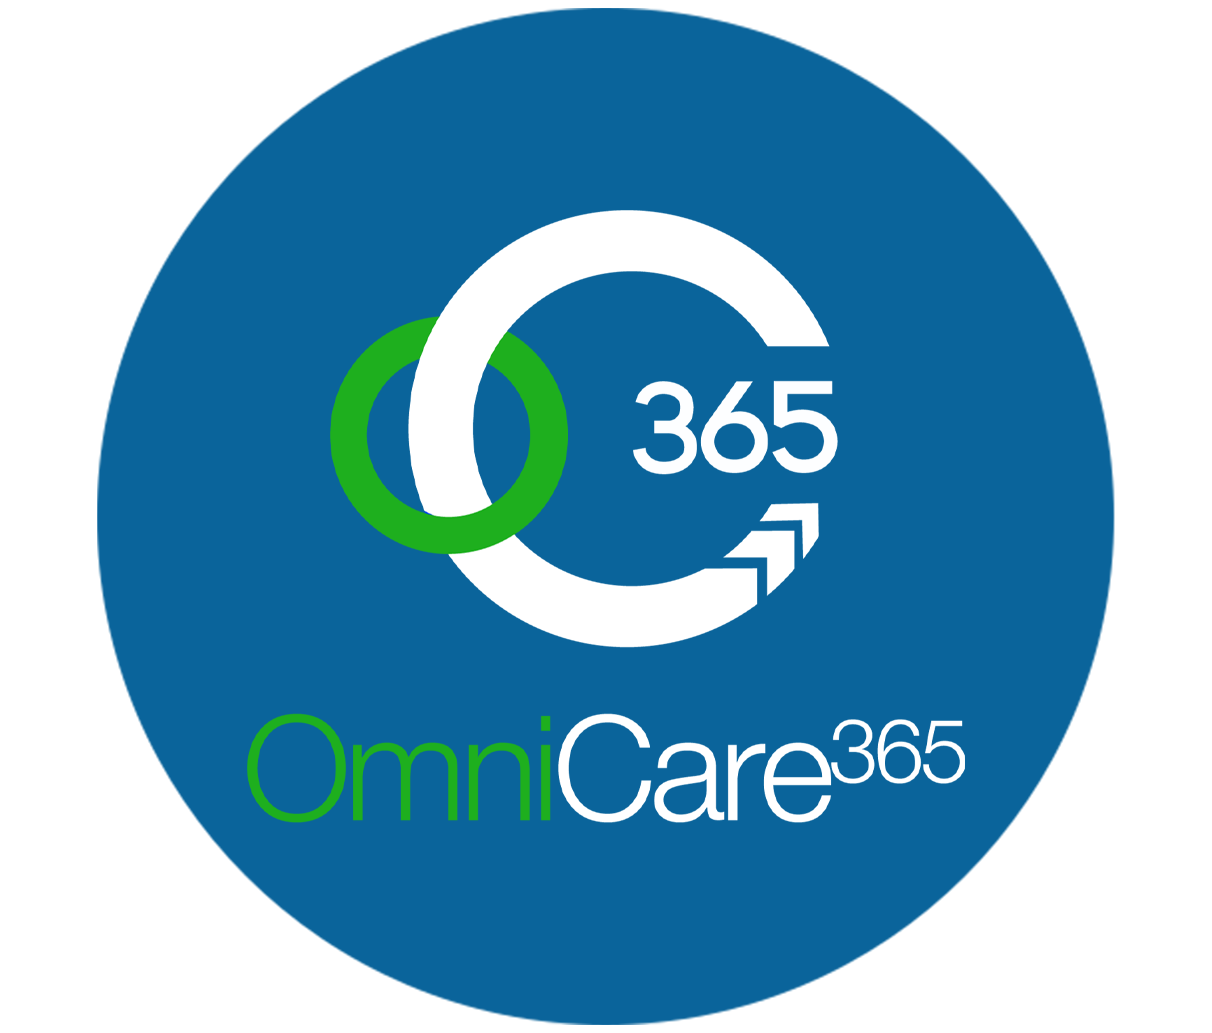 OmniCare365